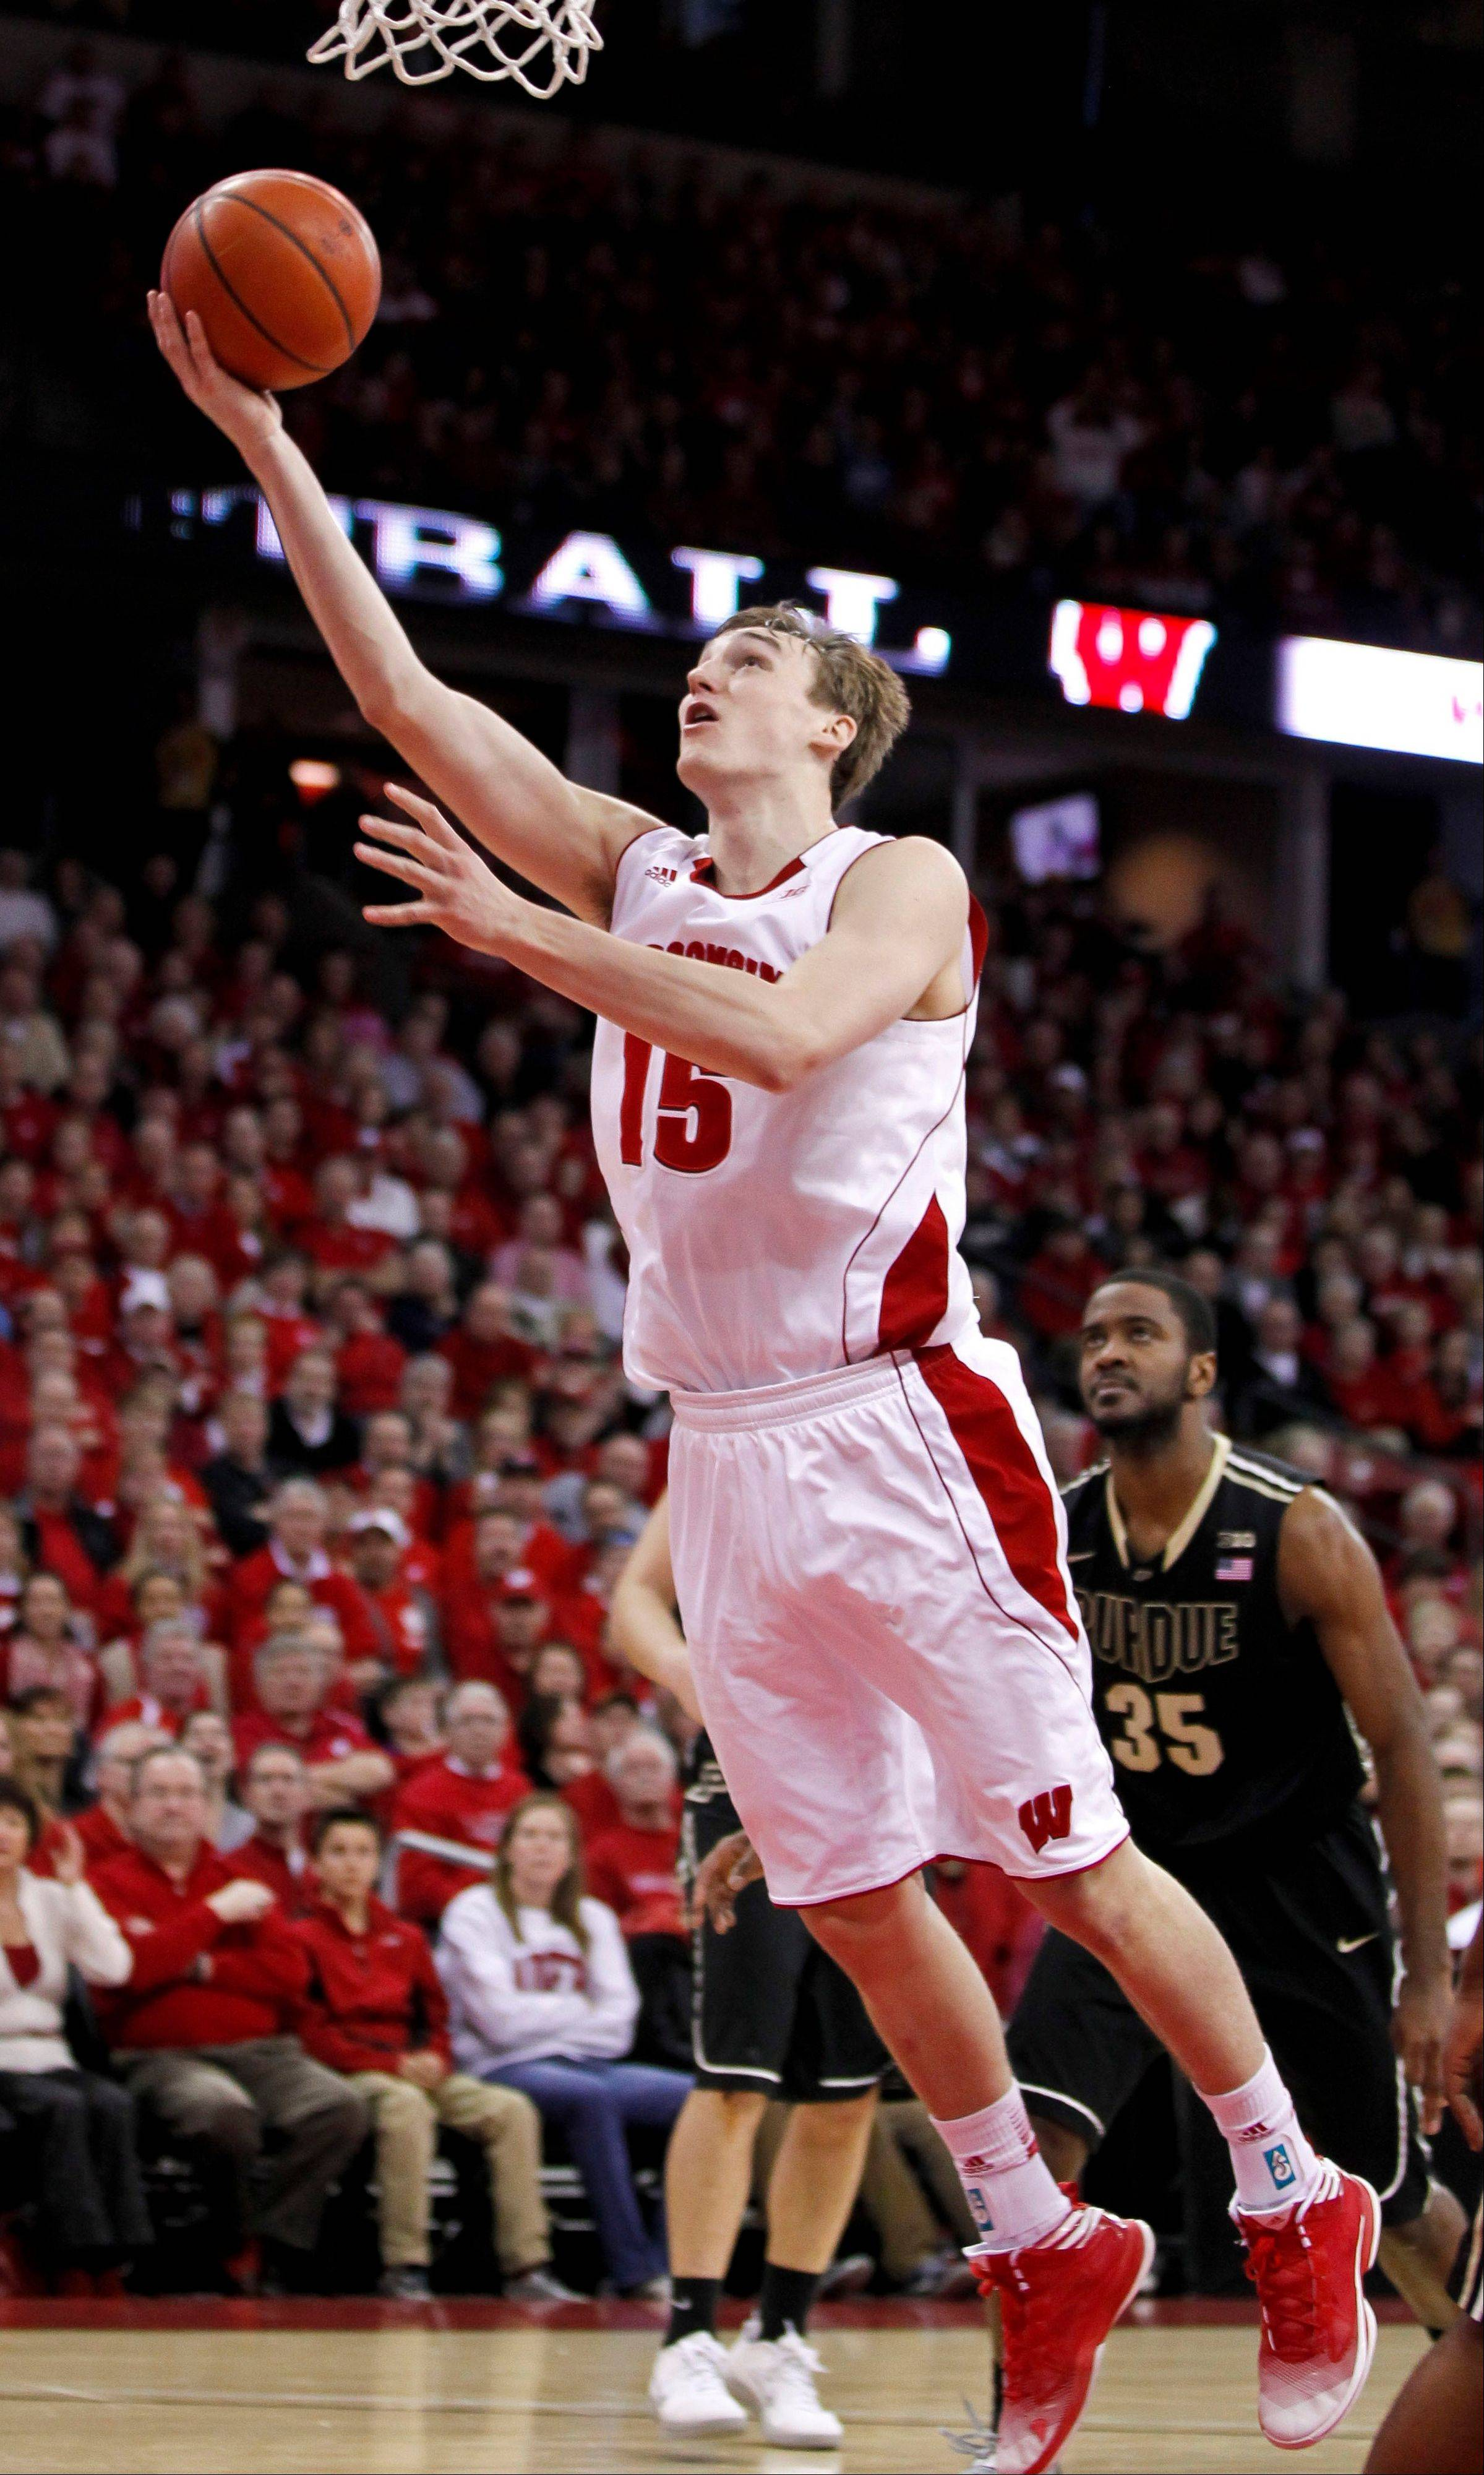 Wisconsin's Sam Dekker goes to the basket against Purdue during a game in Madison, Wis. Dekker shot 41 percent from 3-point range in Big Ten play last year.